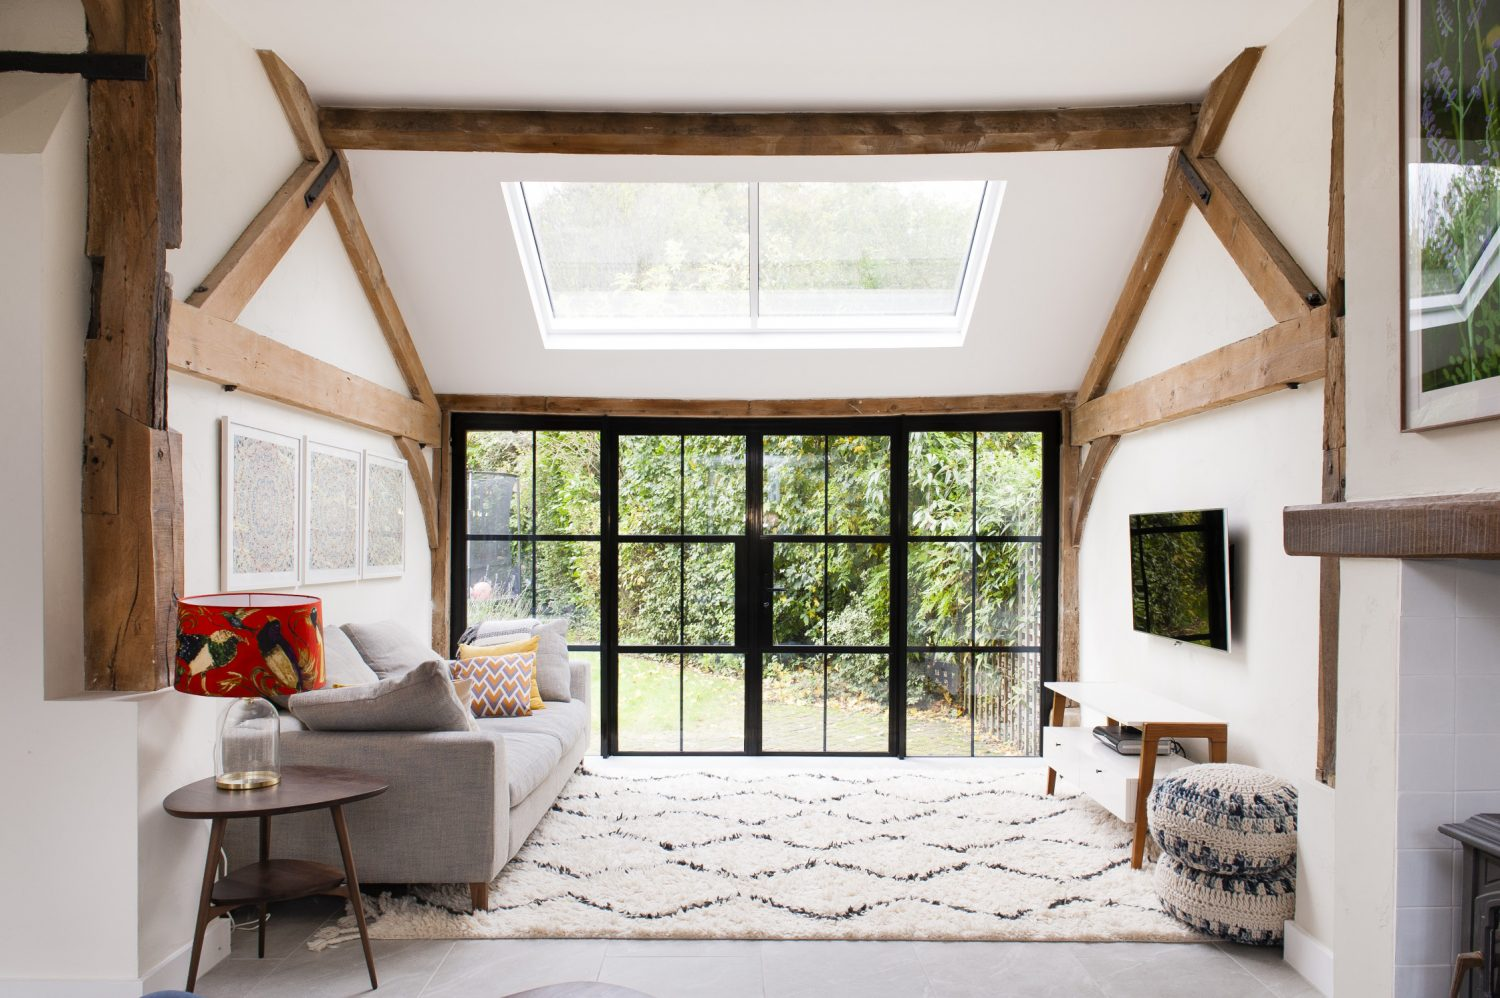 Richard and Tanya created the 'inside/outside' feeling they craved by glazing the entire southfacing back wall of the sitting room with 'Crittall-style' windows and French doors